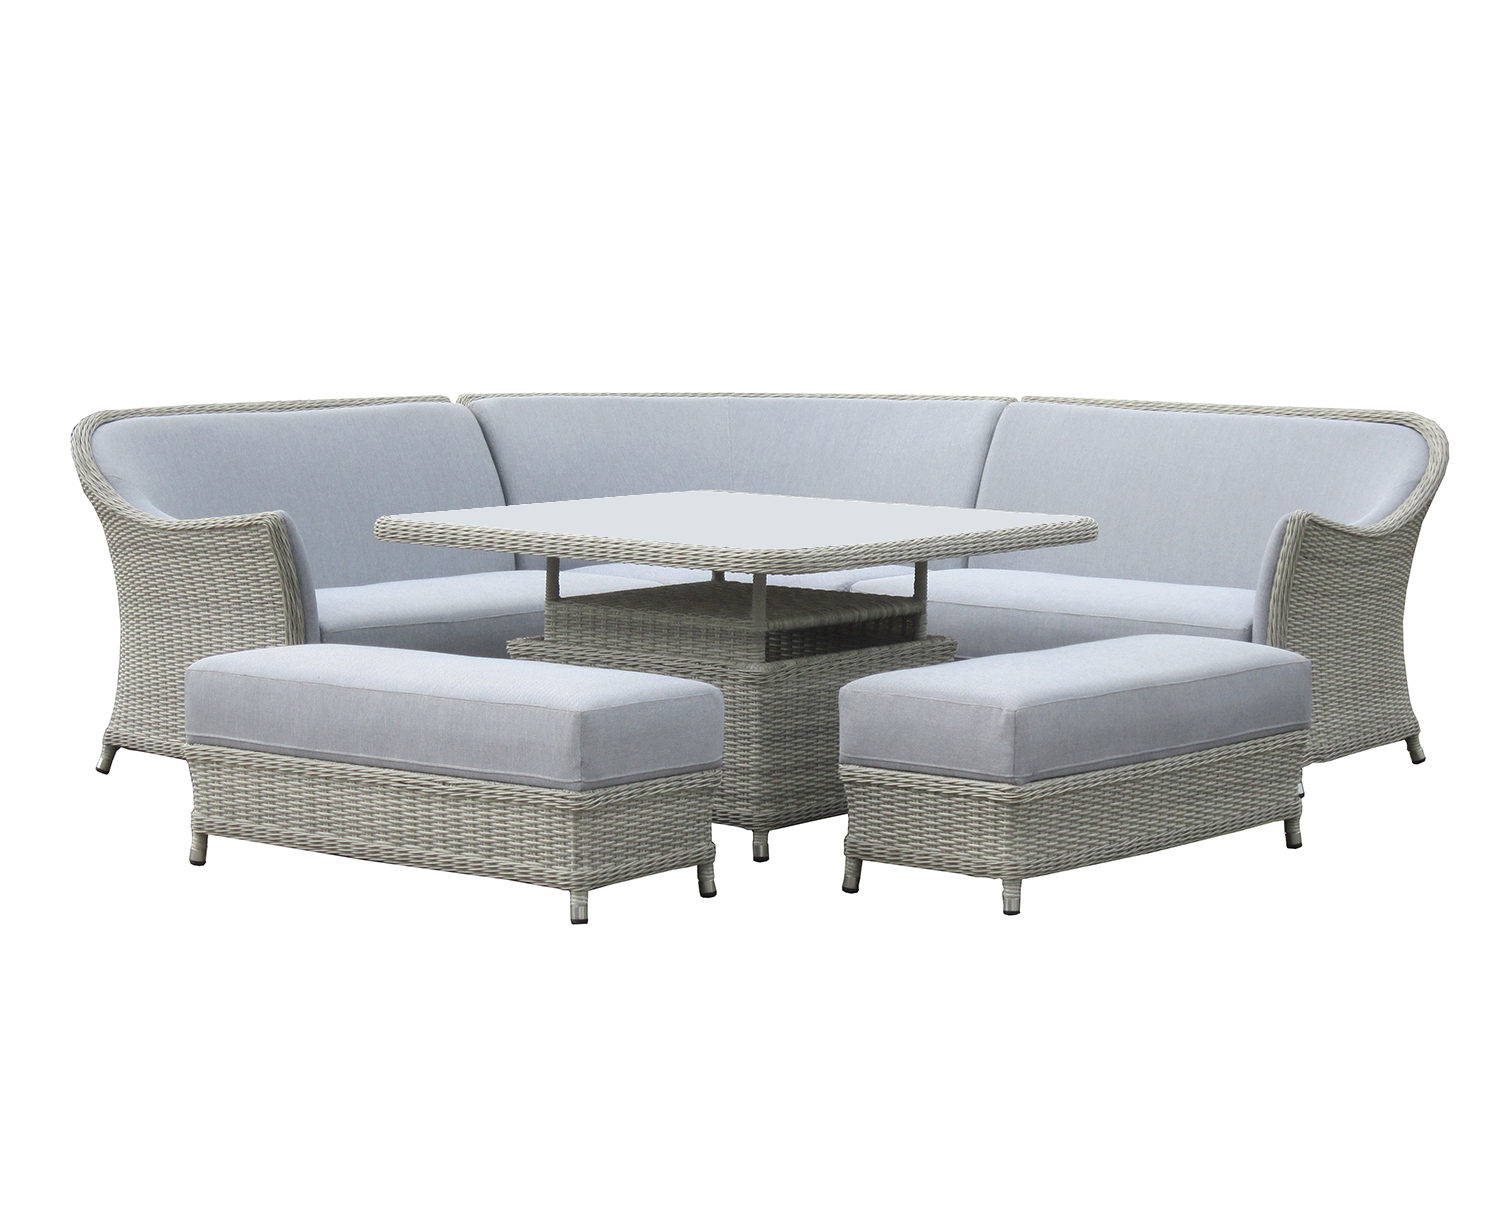 Bramblecrest Gainsborough Modular Sofa Set